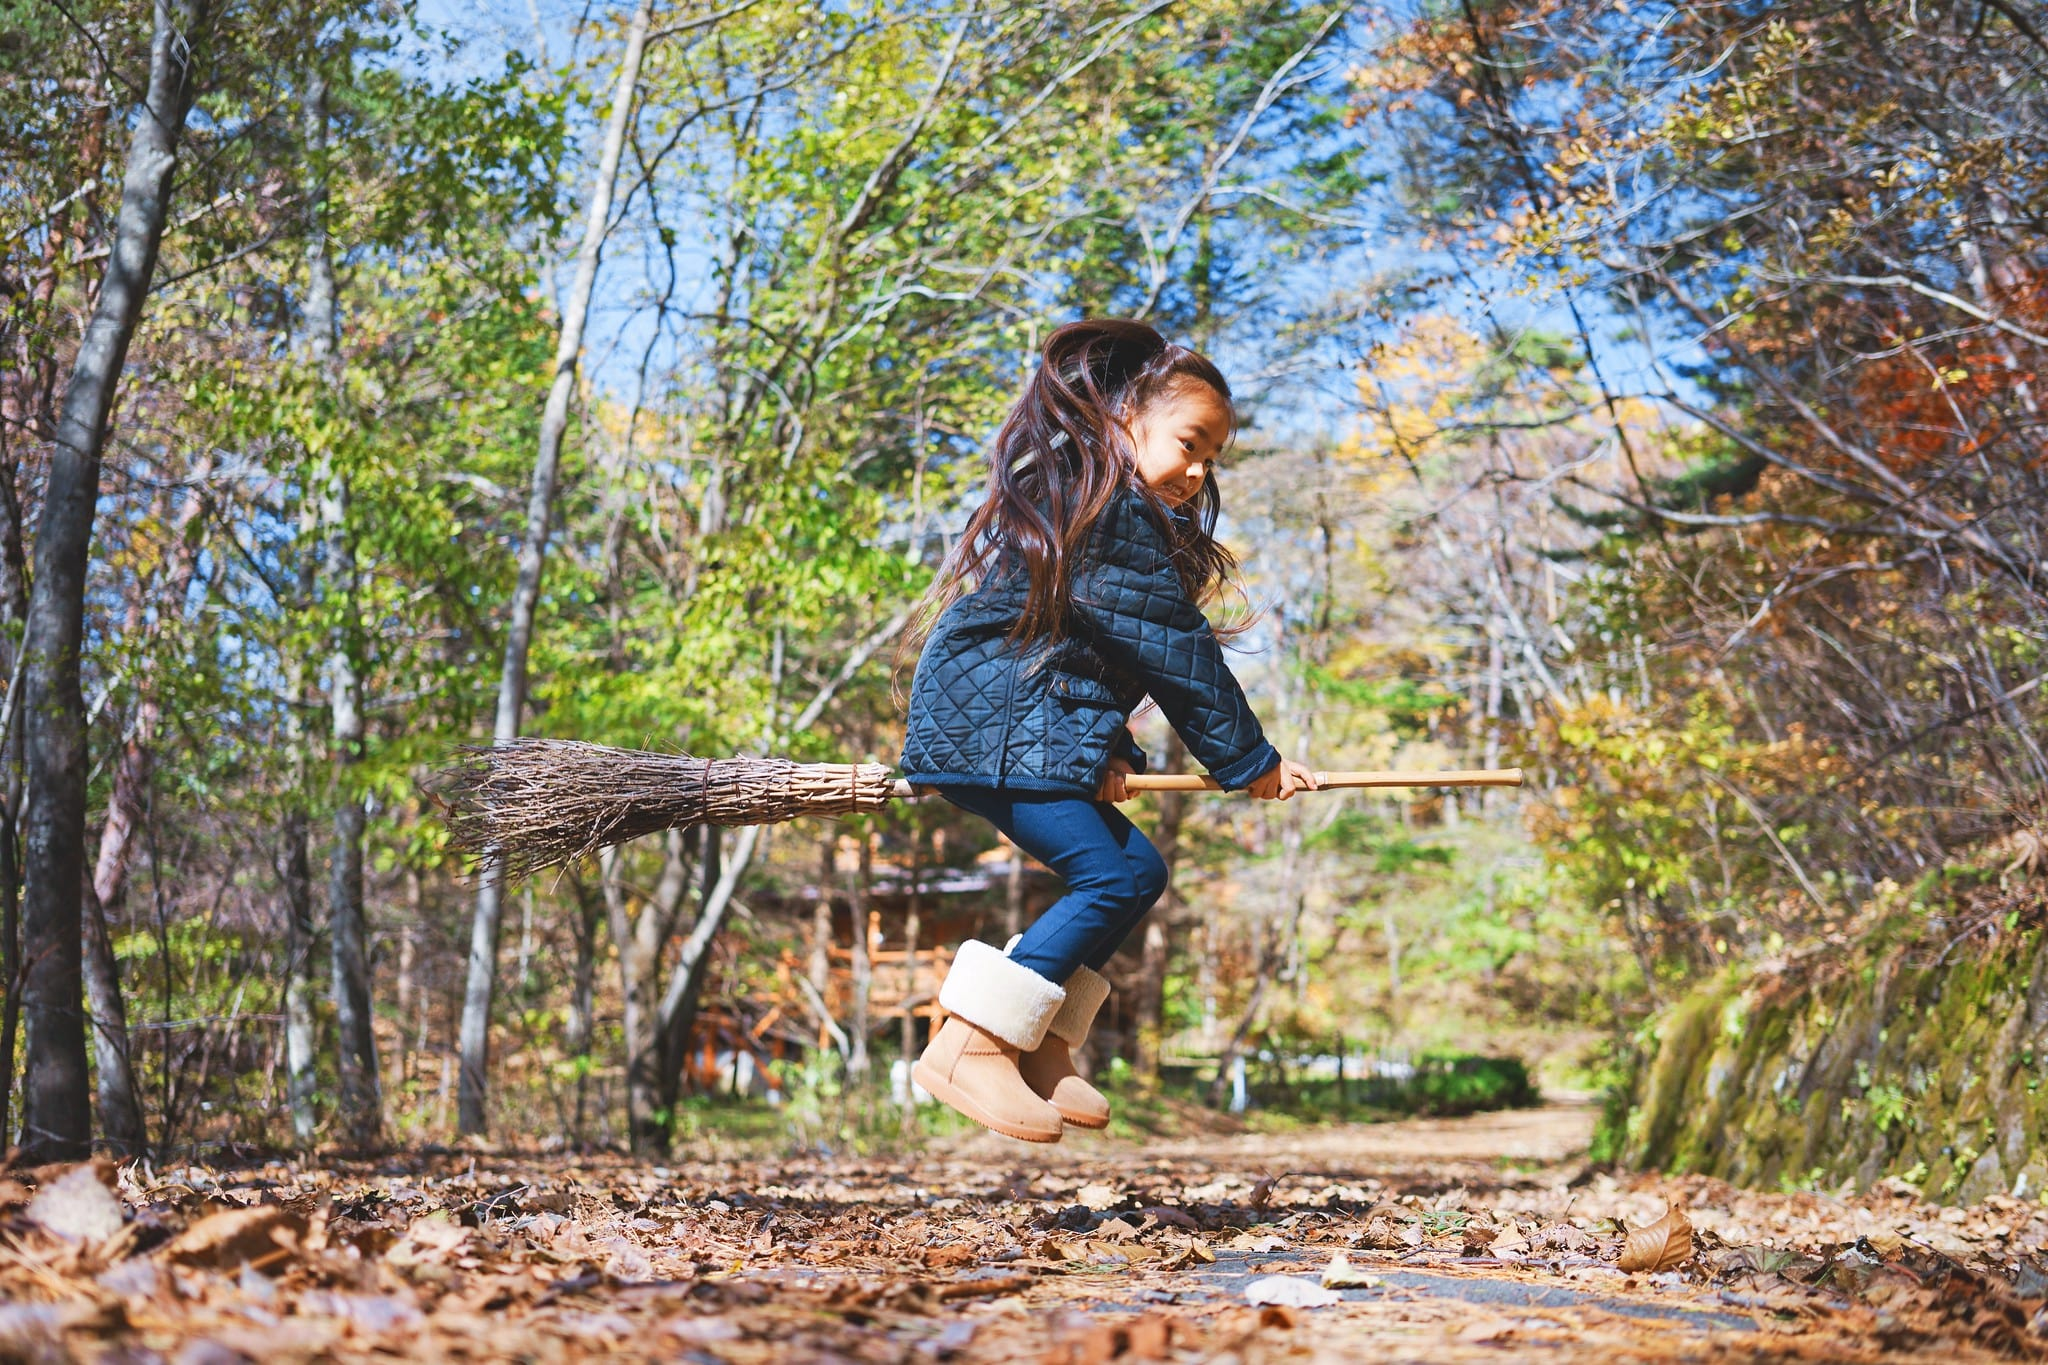 young girl riding broomstick in the forest